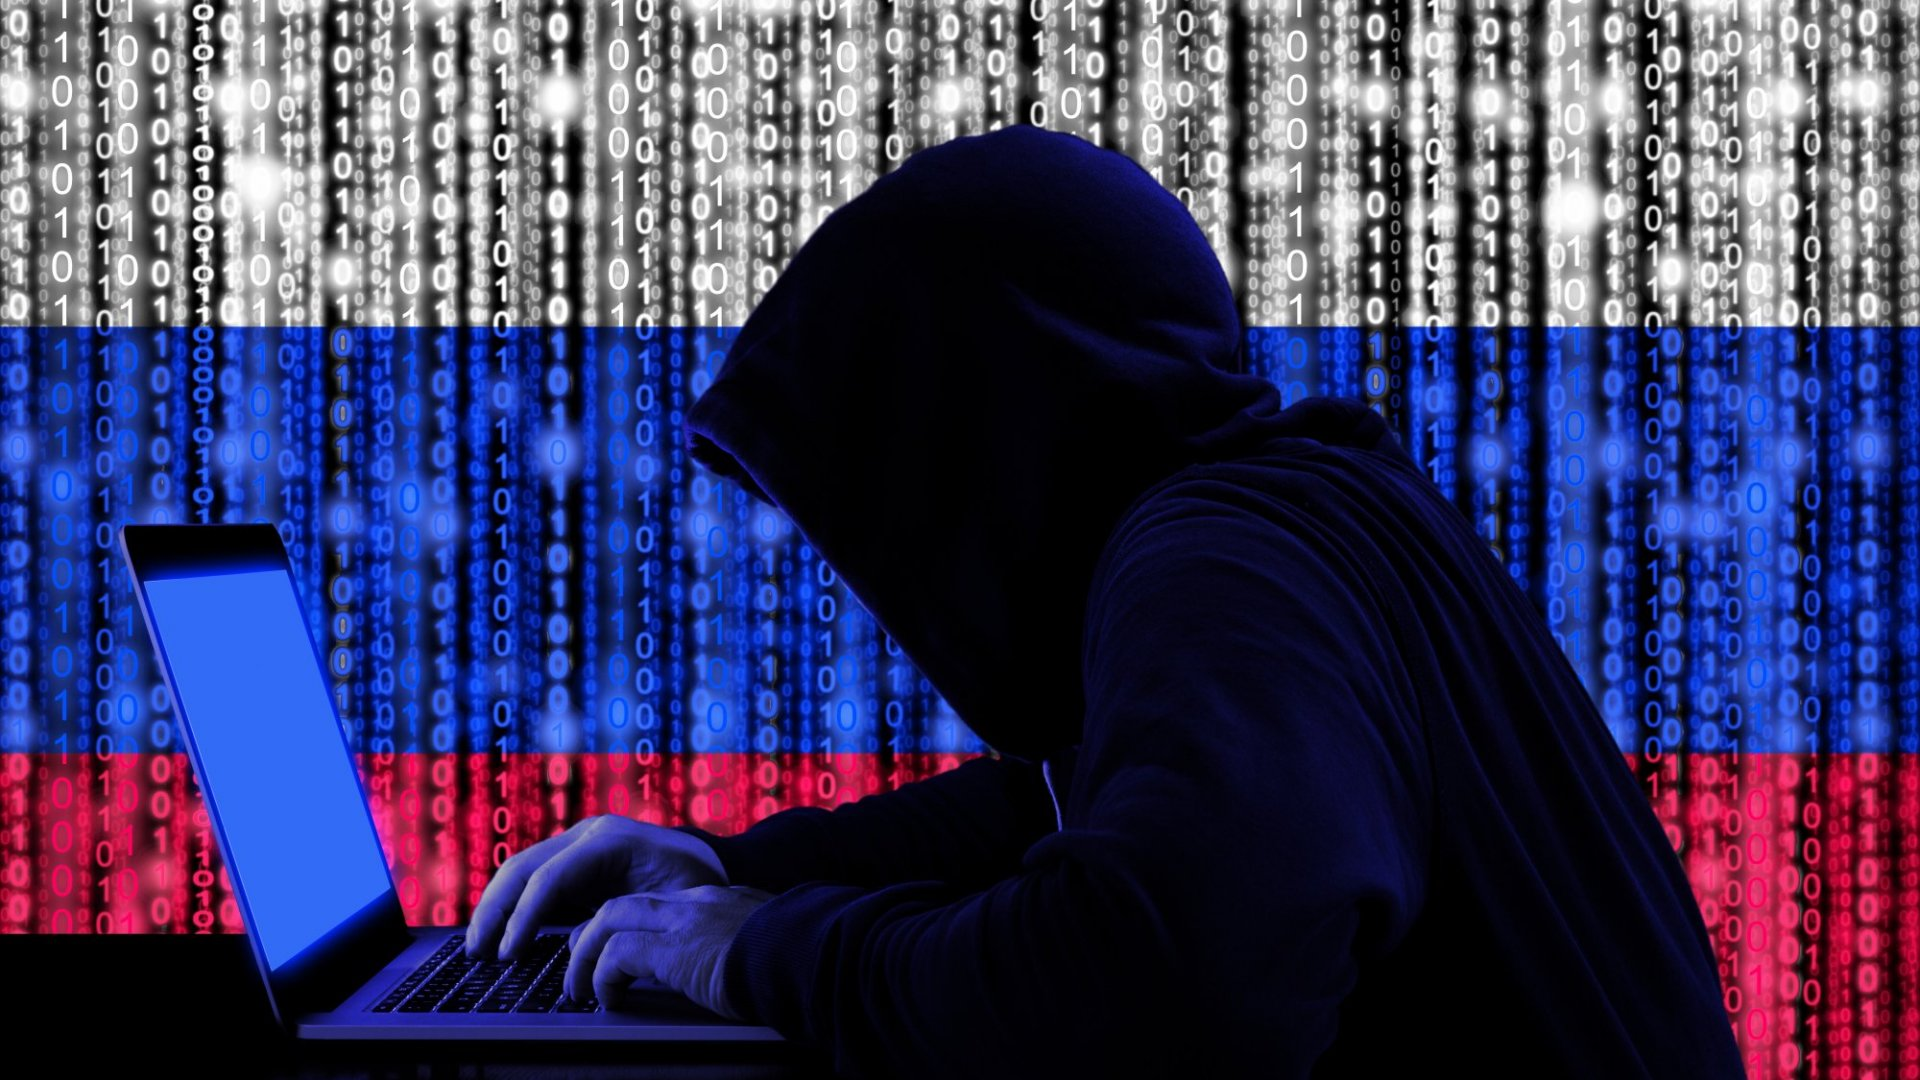 Russian Hacking: 8 Tough Questions the U.S. Government Is Not Answering